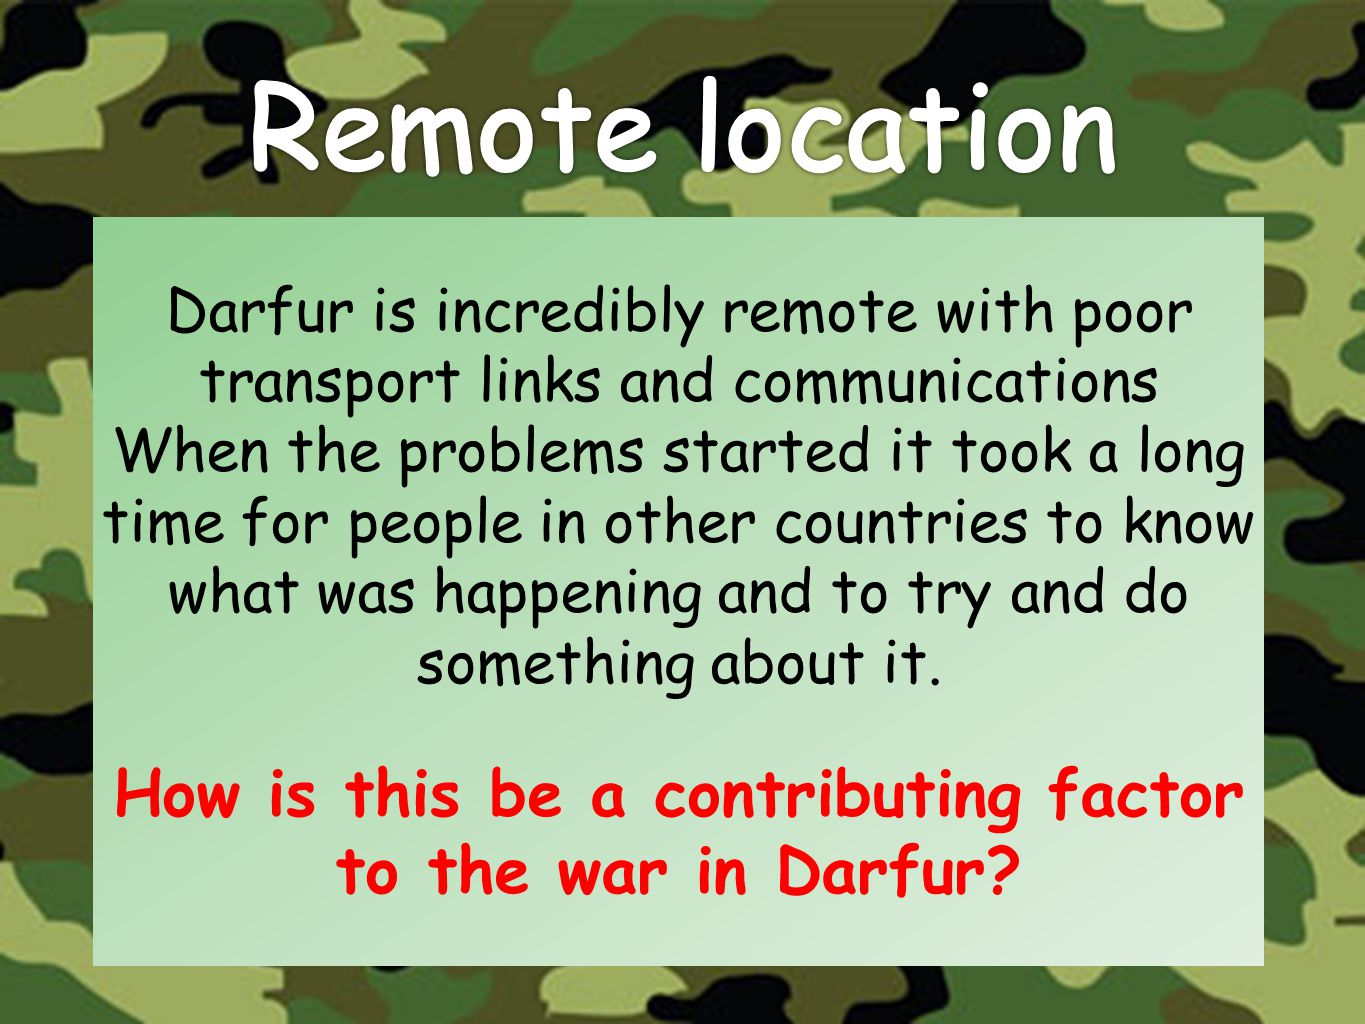 How is this be a contributing factor to the war in Darfur